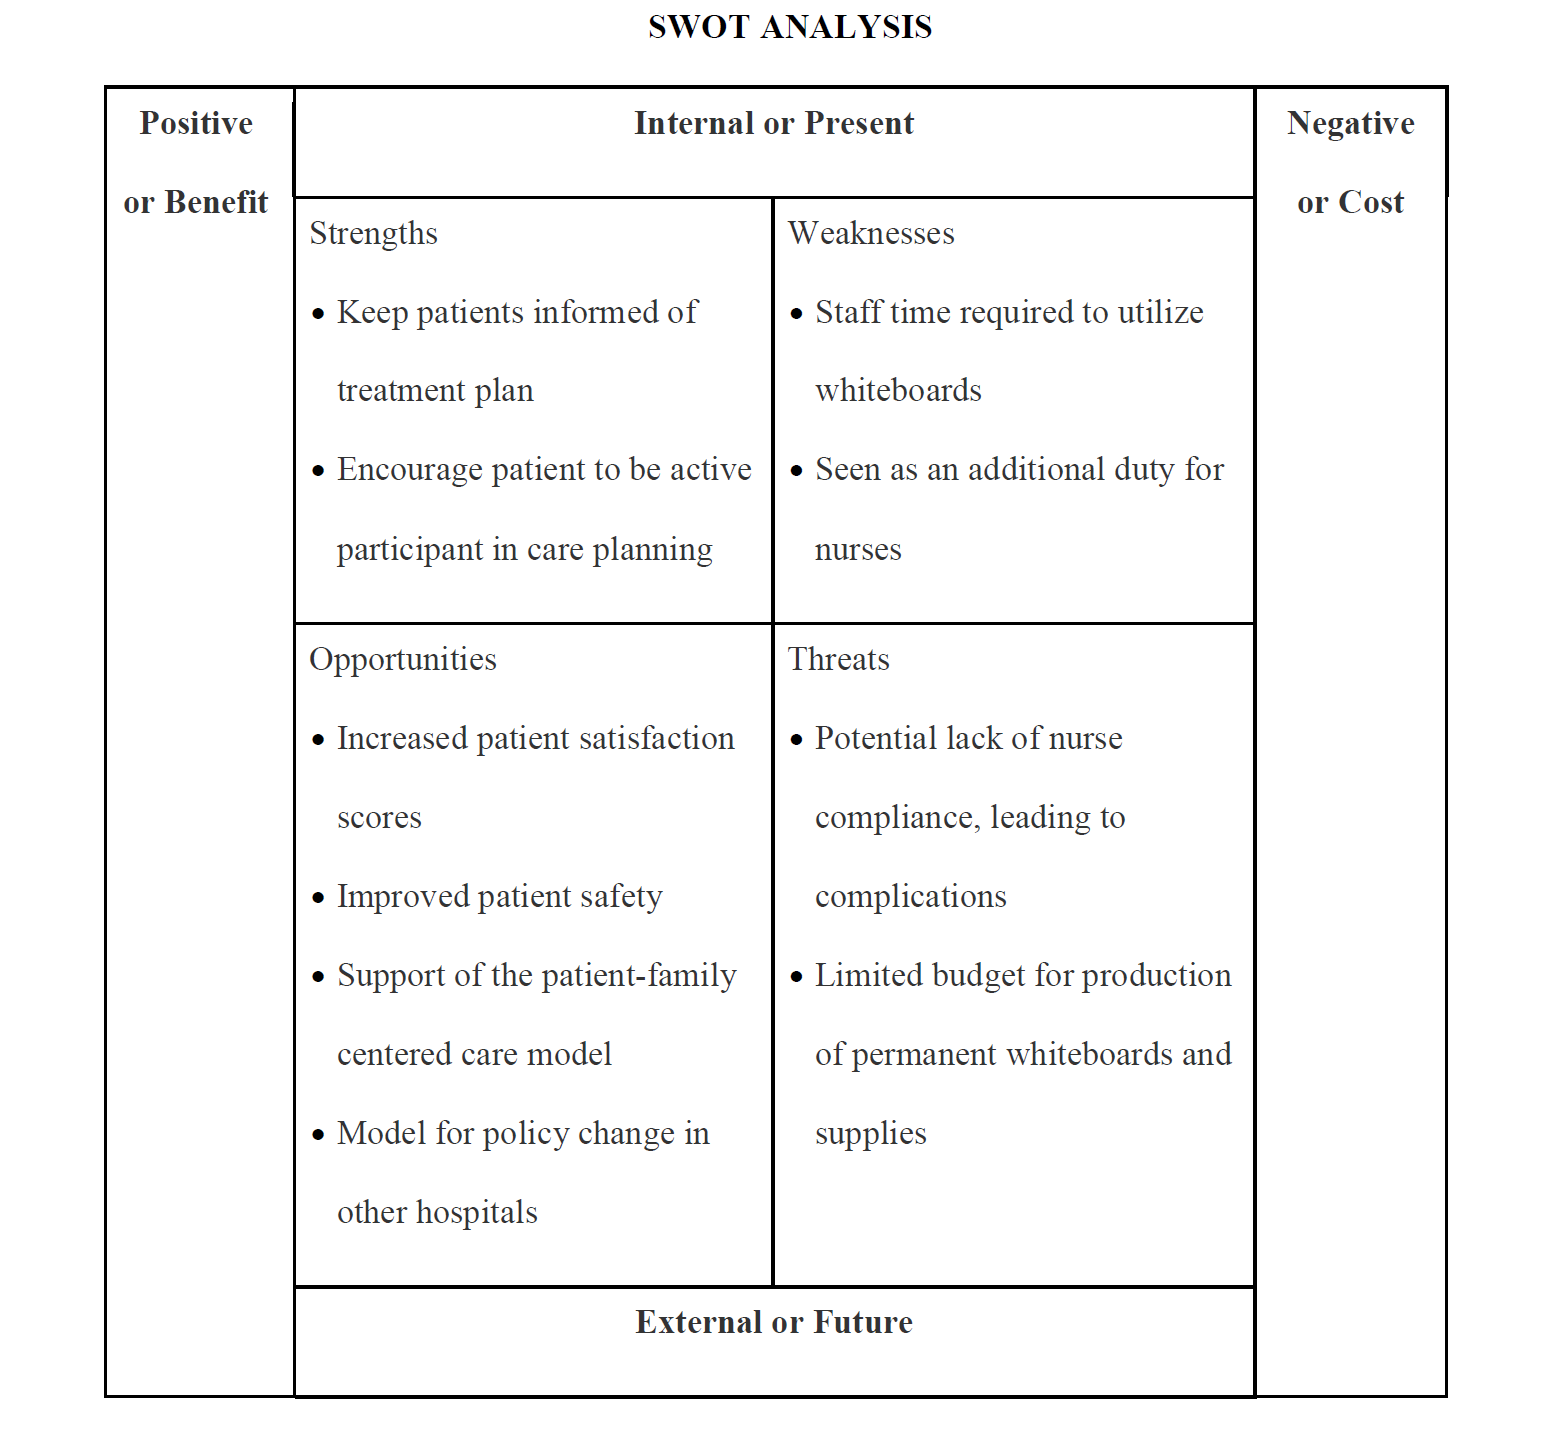 (Figure 1 - SWOT Analysis, The use of personalized whiteboards in the inpatient acute care setting and their effect on patient and nurses perception of communication, Cheryl Karn, University of San Francisco, chereal8@gmail.com, Appendix H, pg 31)